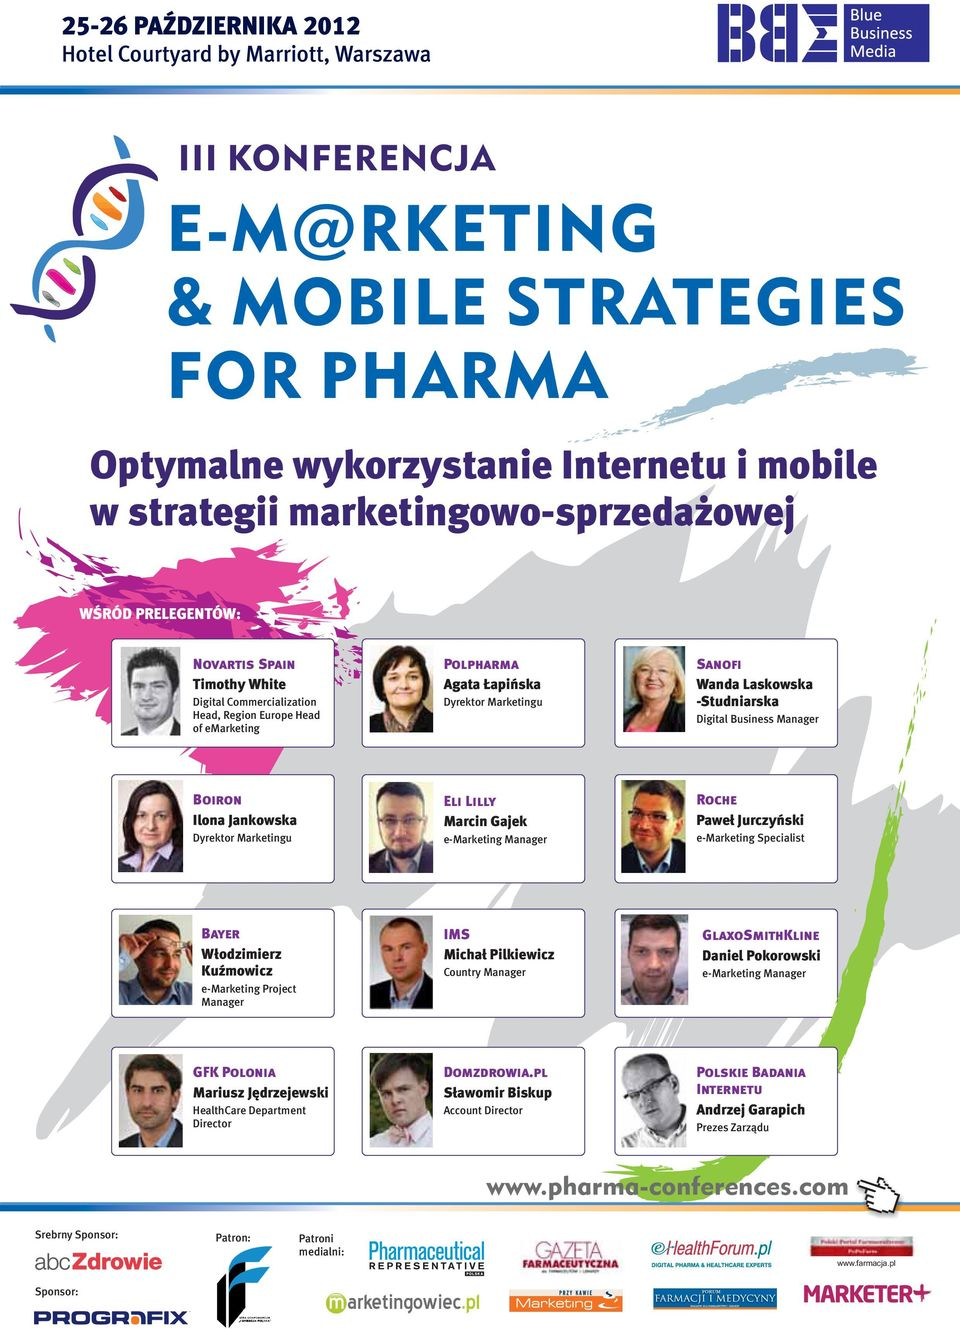 Laskowska -Studniarska Digital Business Manager Boiron Ilona Jankowska Dyrektor Marketingu Eli Lilly Marcin Gajek e-marketing Manager Roche Paweł Jurczyński e-marketing Specialist Bayer Włodzimierz